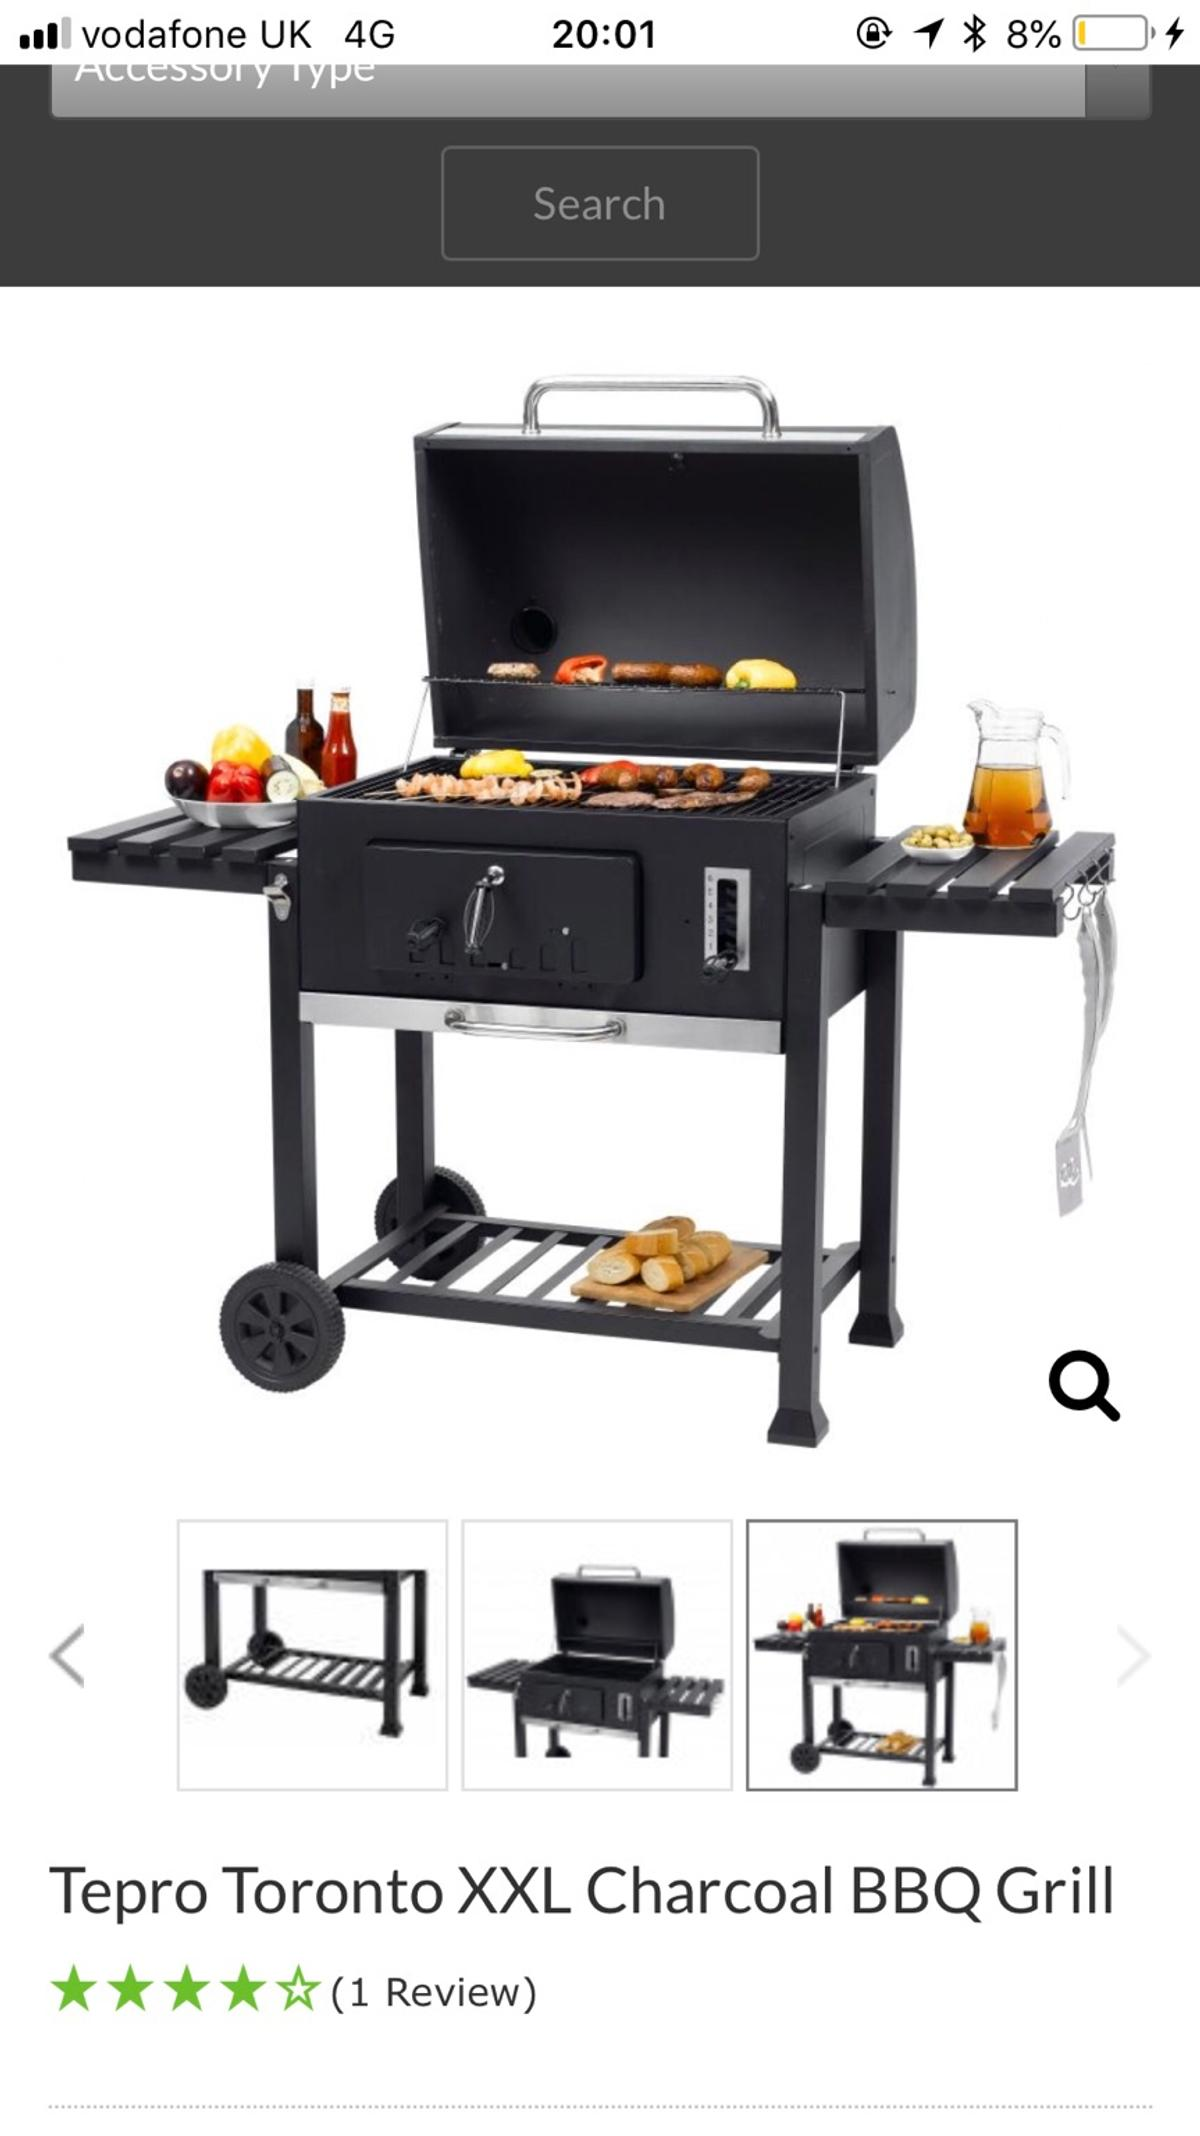 Tepro Toronto Xxl.Tepro Toronto Xxl Charcoal Bbq Grill In Sn2 Swindon For